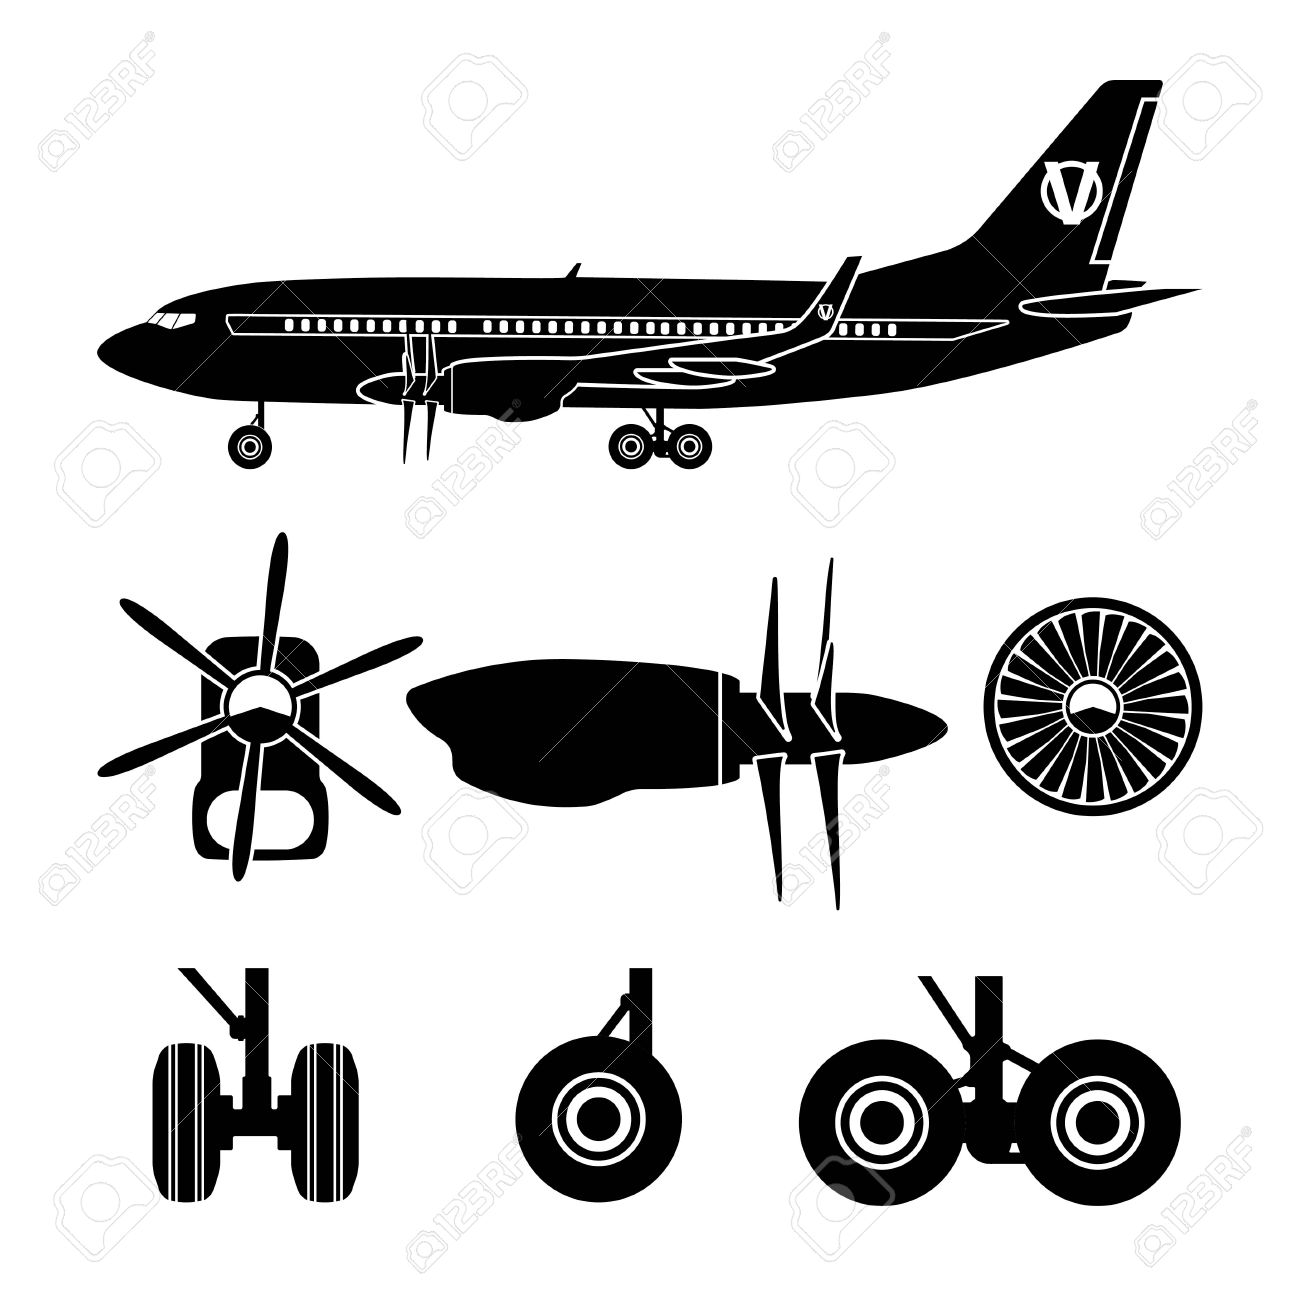 Parts For Aircraft Clipart